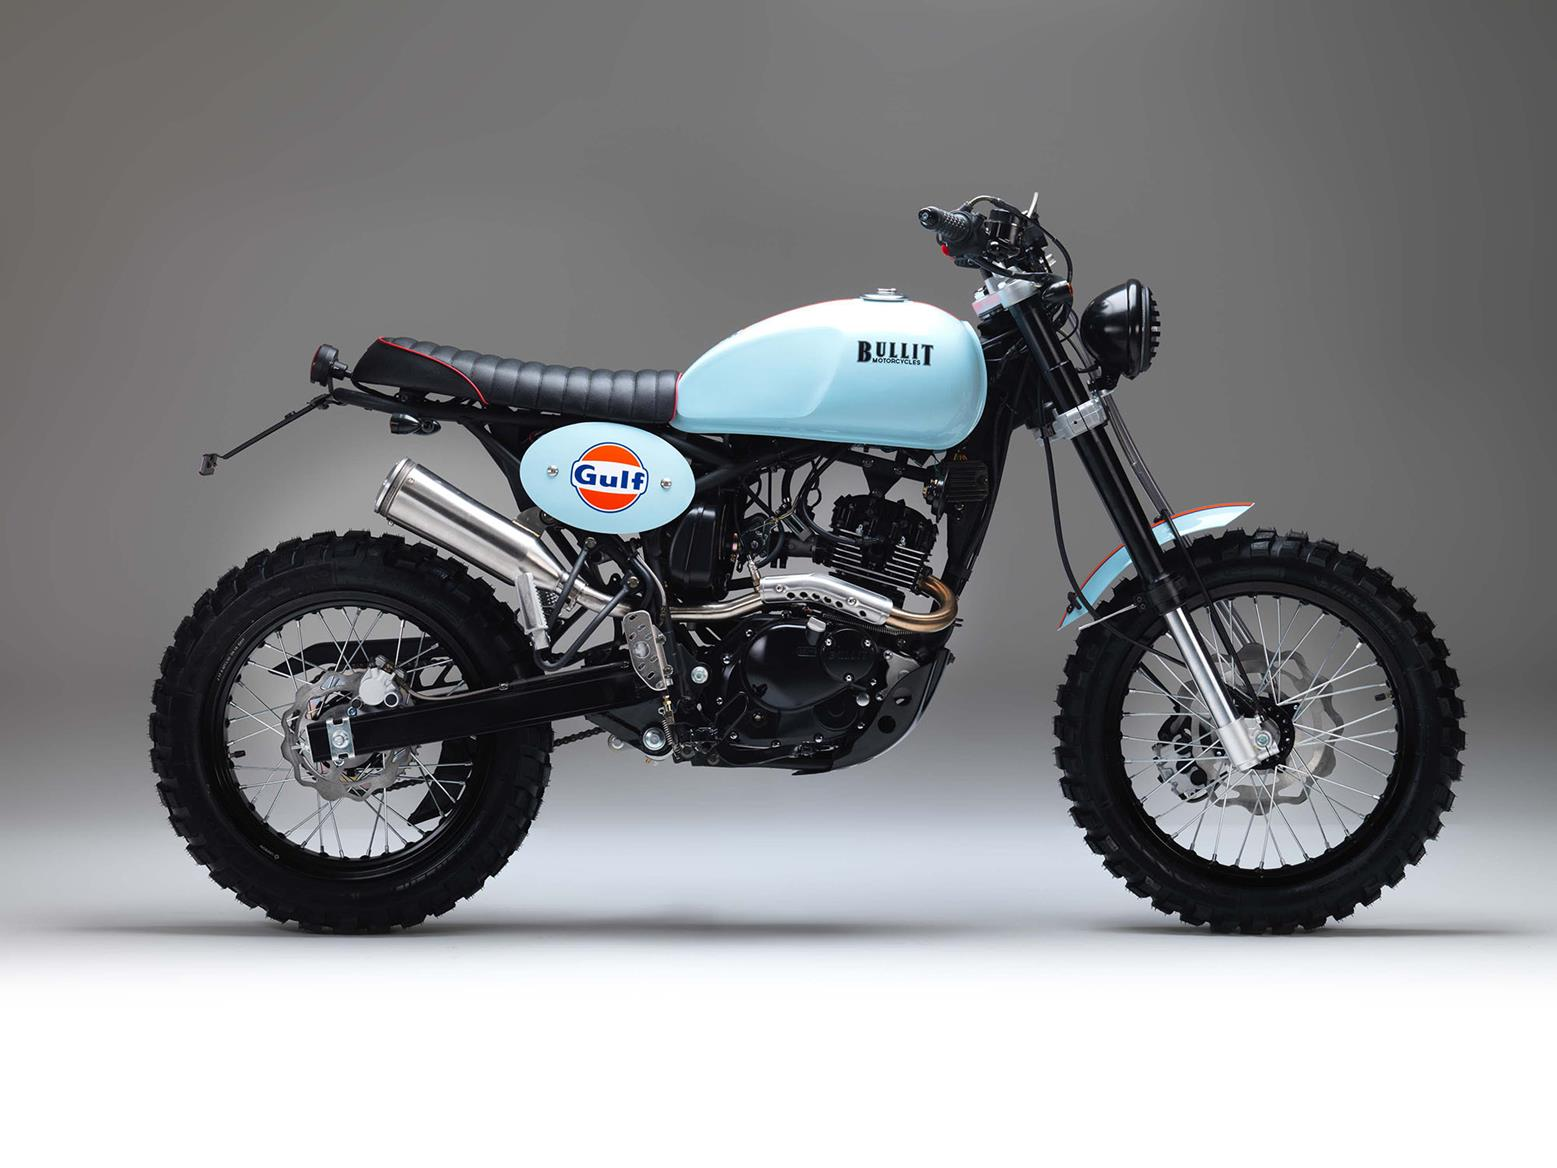 Bullit Motorcycles unveil Gulf Oil limited editions